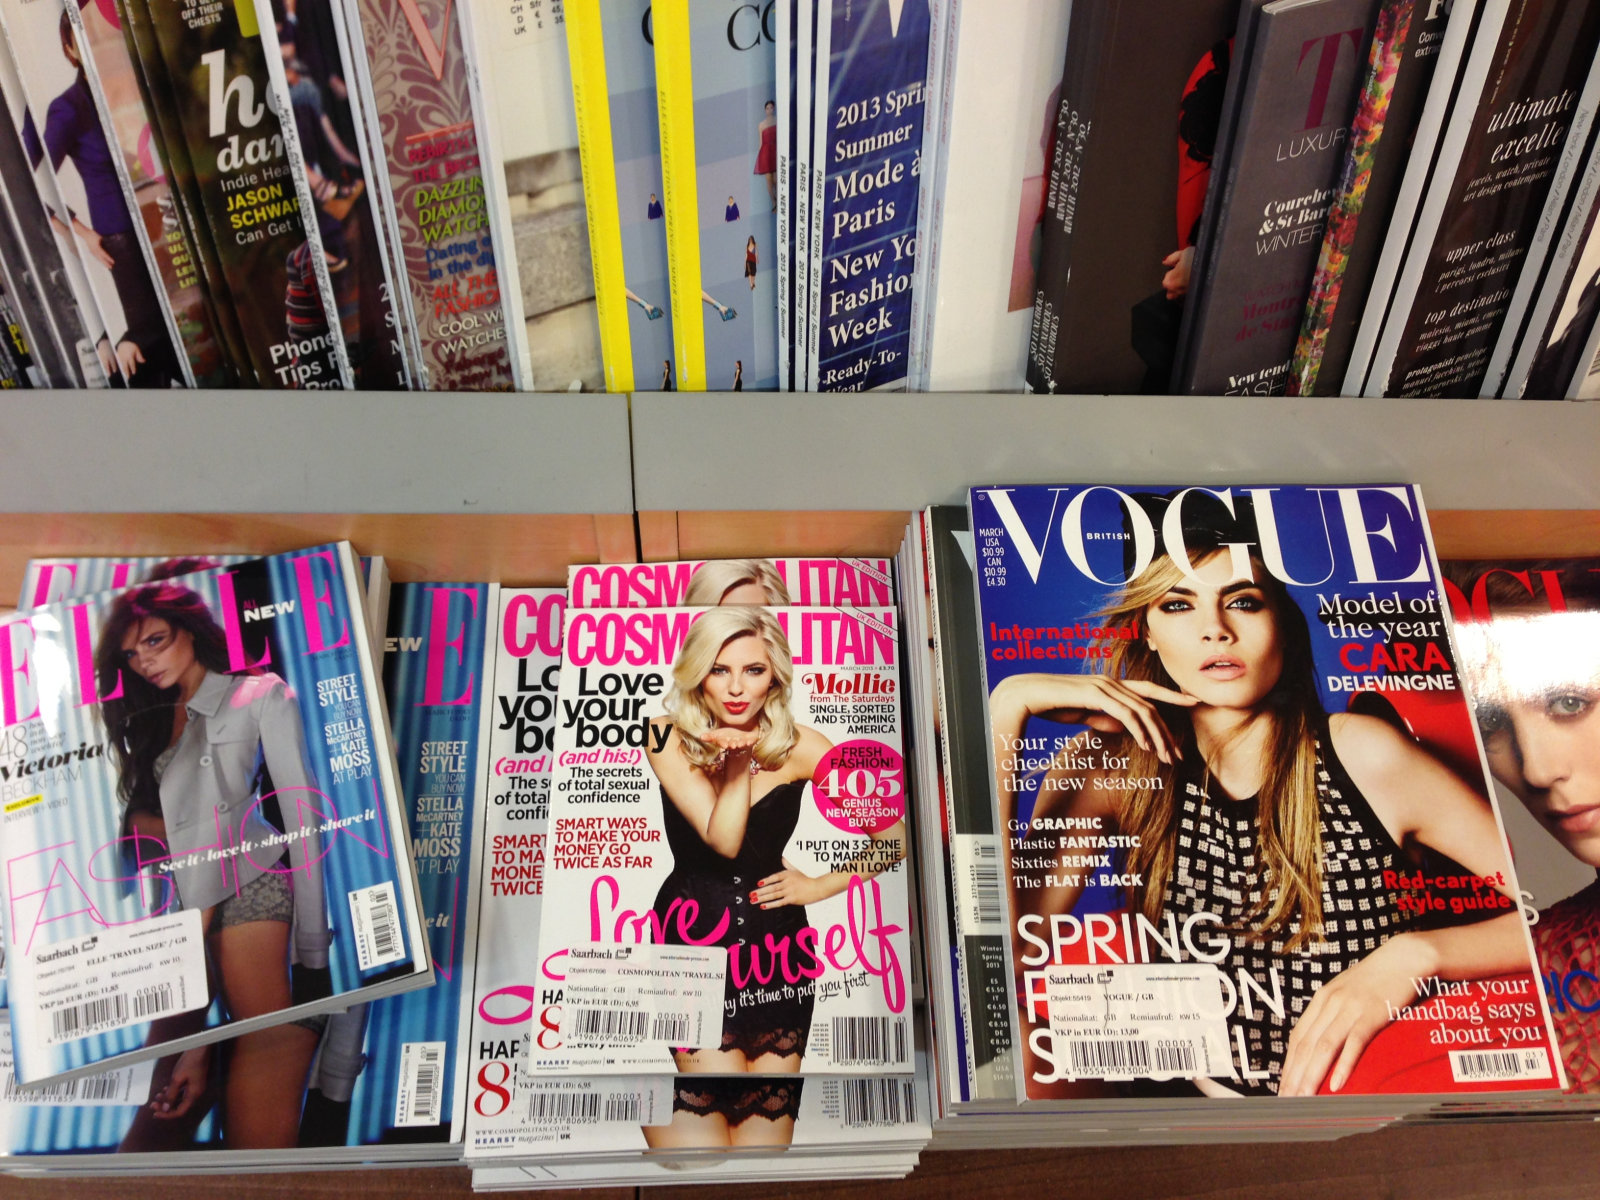 standards of beauty depicted in magazines essay